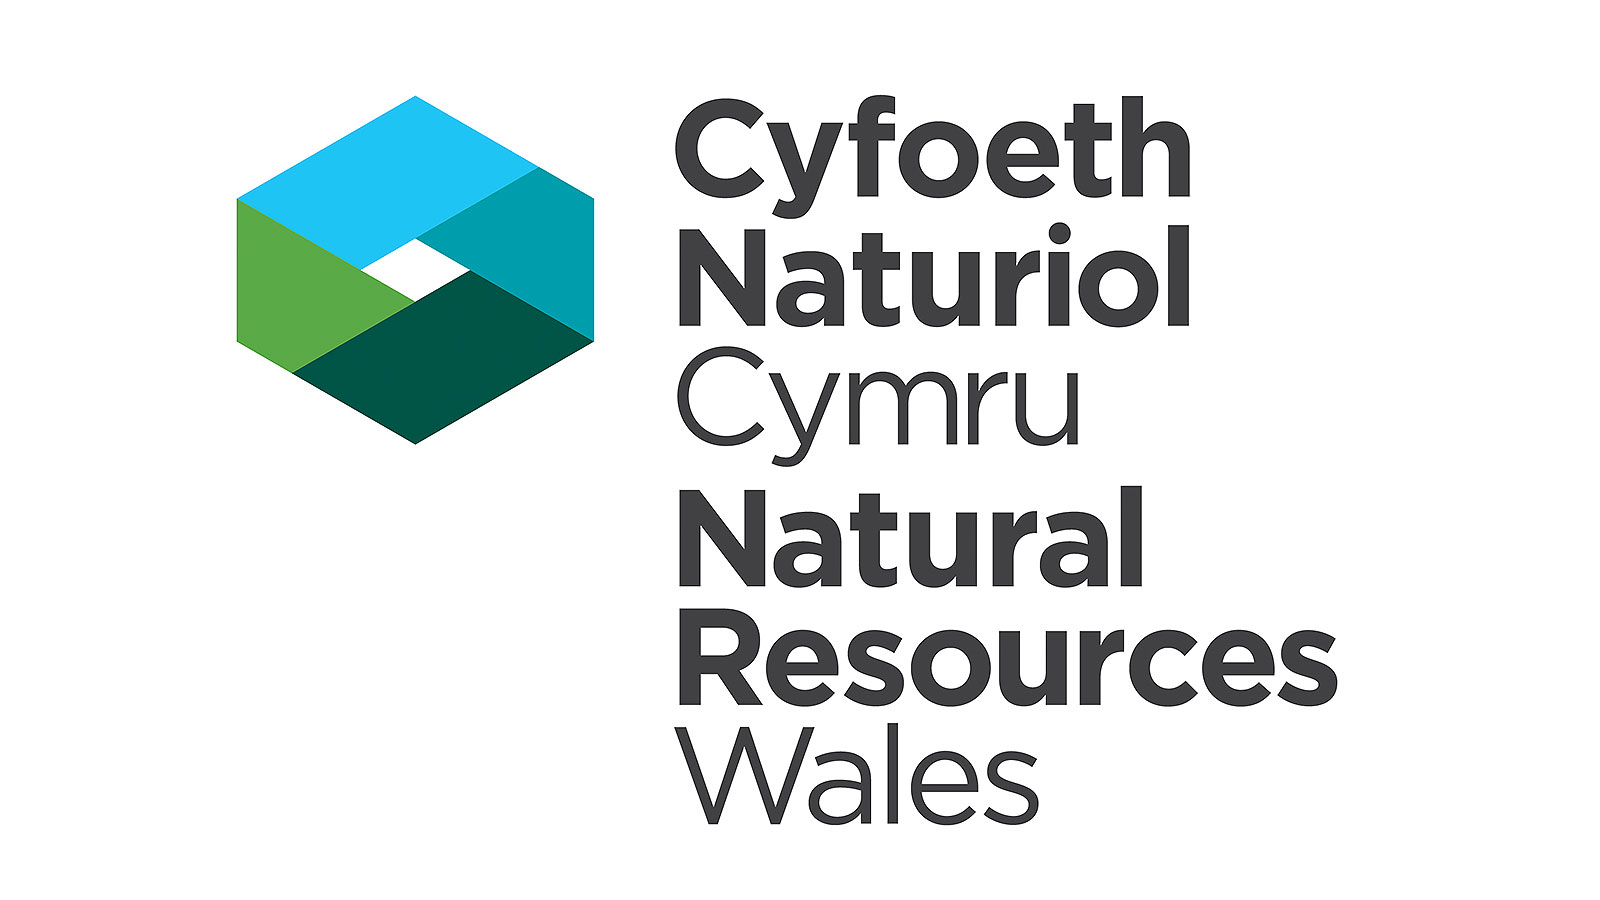 Asite are pleased to announce the arrival of Natural Resources Wales on to the Adoddle Cloud platform